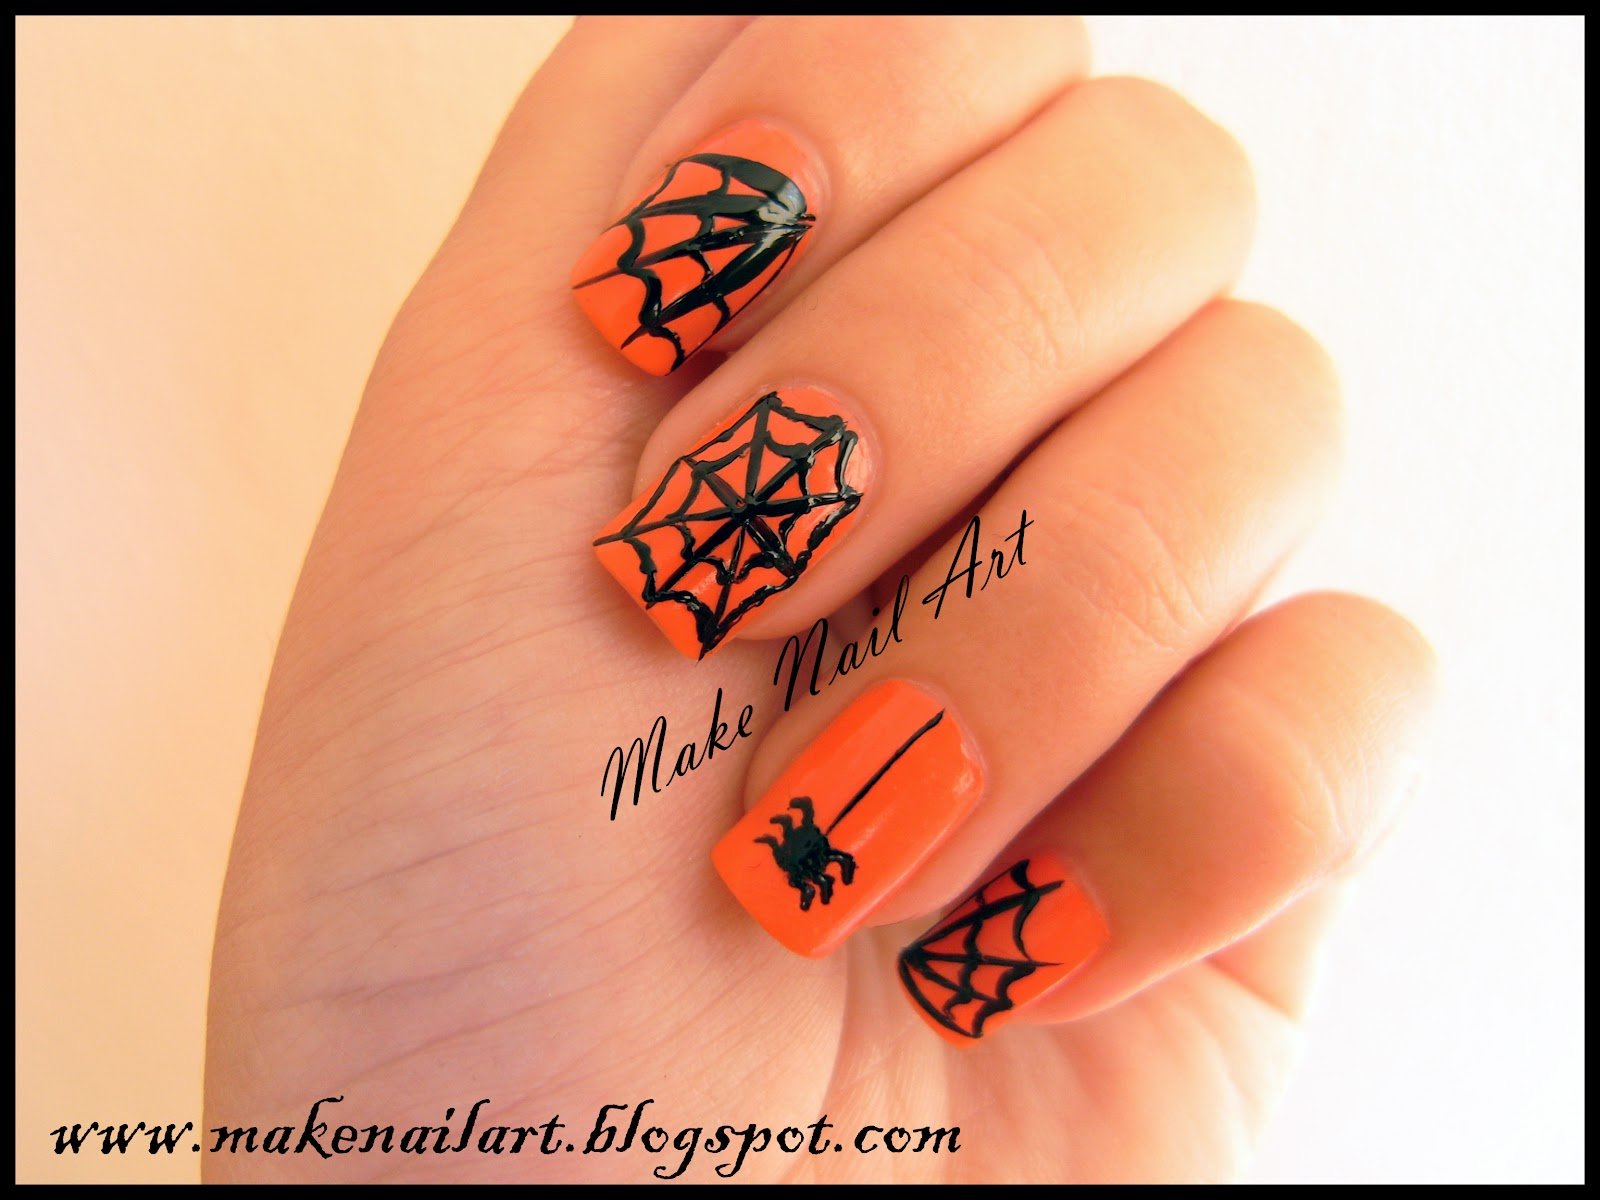 Make nail art spider web nail art tutorial for halloween spider web nail art tutorial for halloween prinsesfo Images